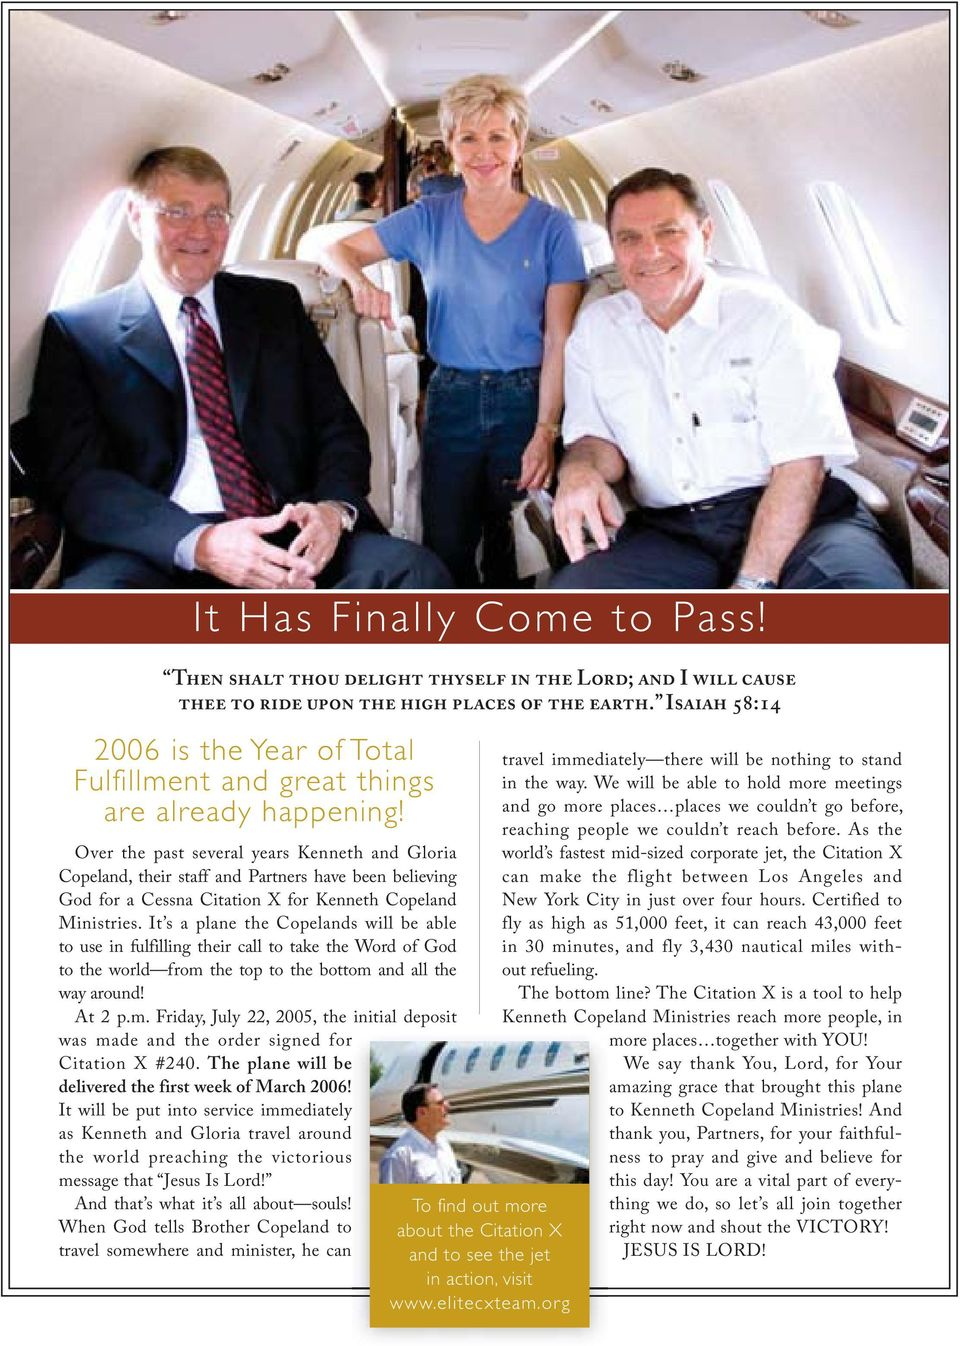 Over the past several years Kenneth and Gloria Copeland, their staff and Partners have been believing God for a Cessna Citation X for Kenneth Copeland Ministries.